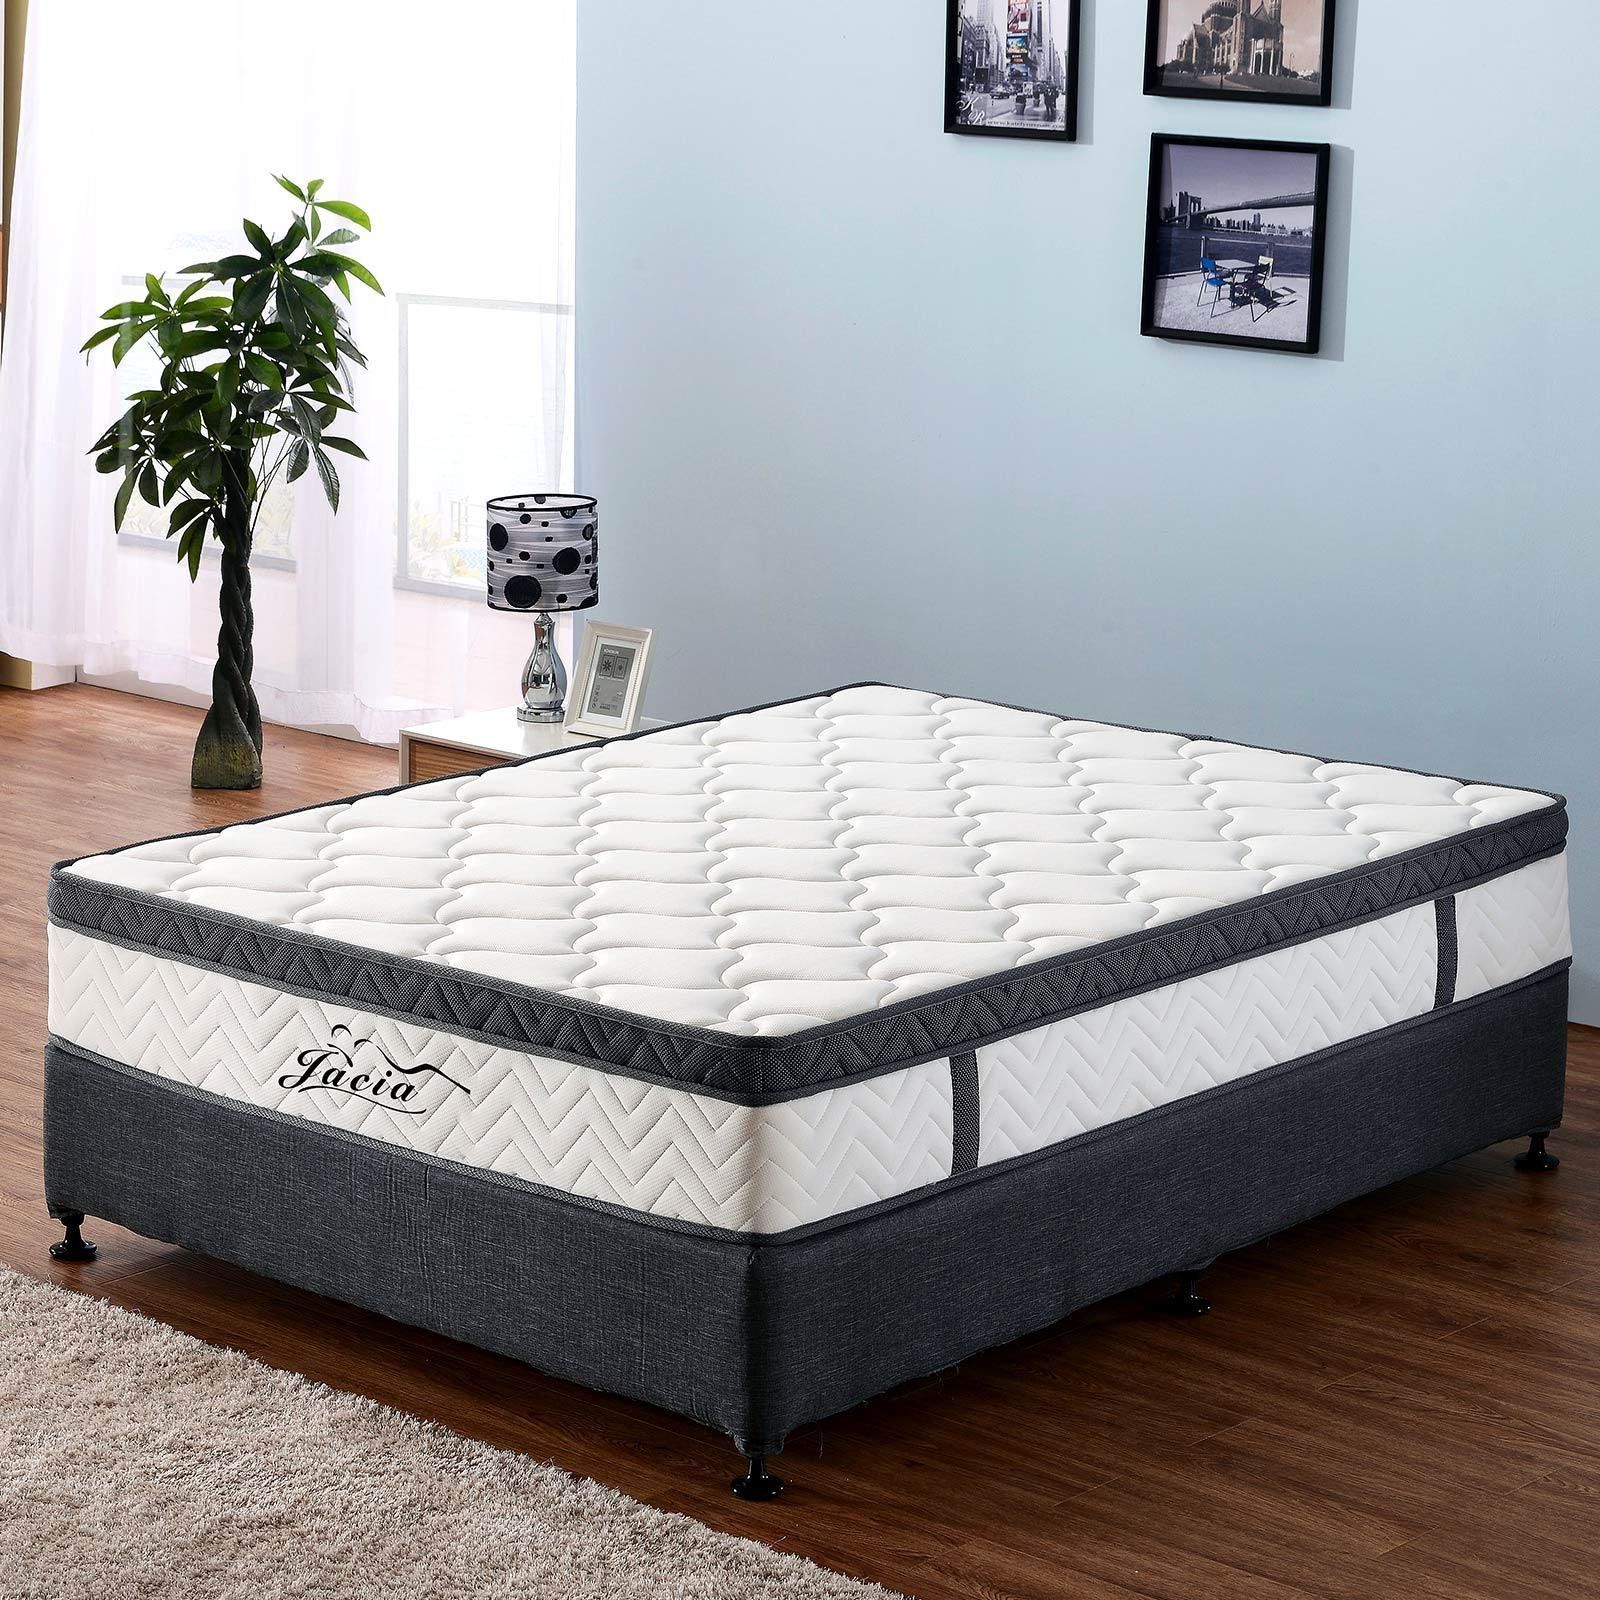 Premium Memory Foam Mattress Euro Top 29cm Thickness 7 Zone Pocket